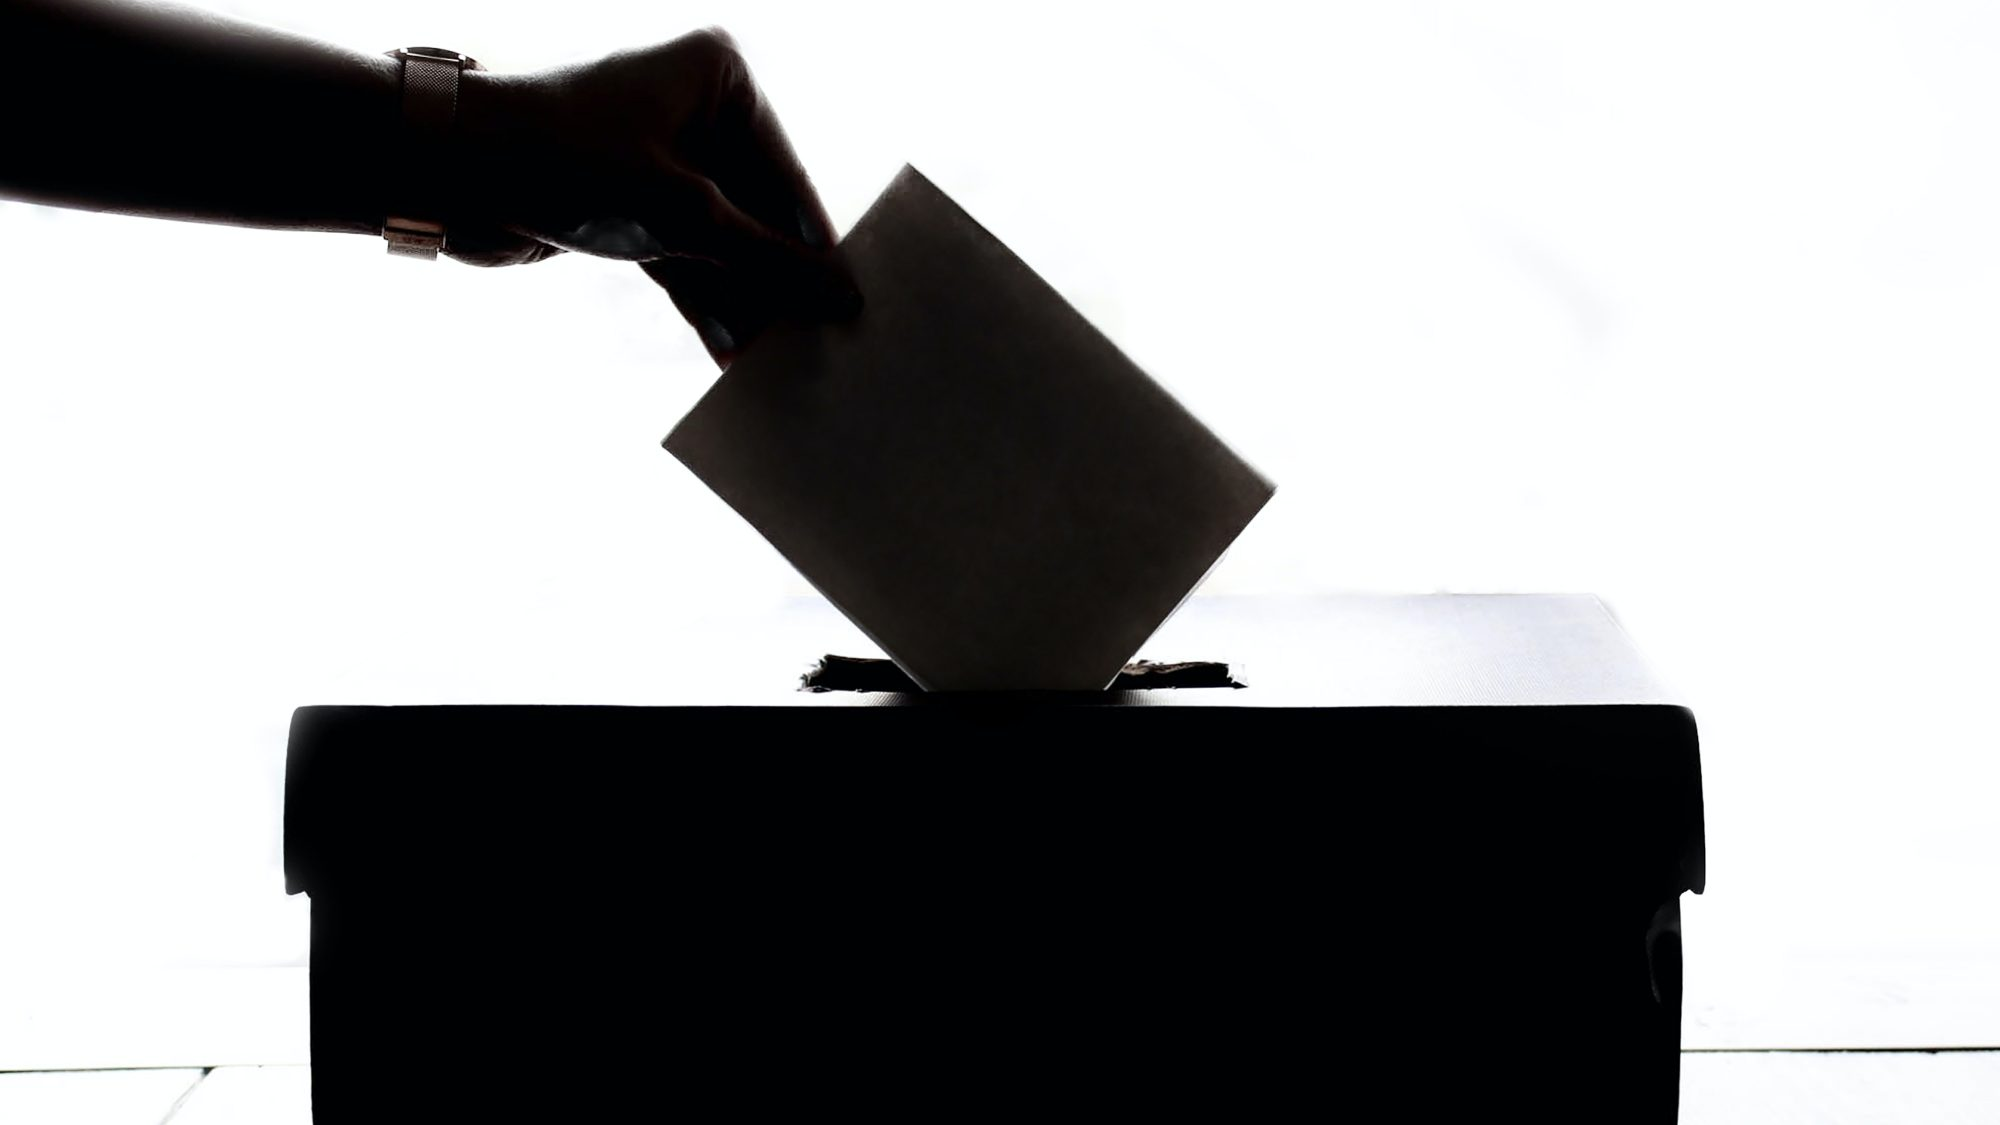 Woman places envelope in ballot box